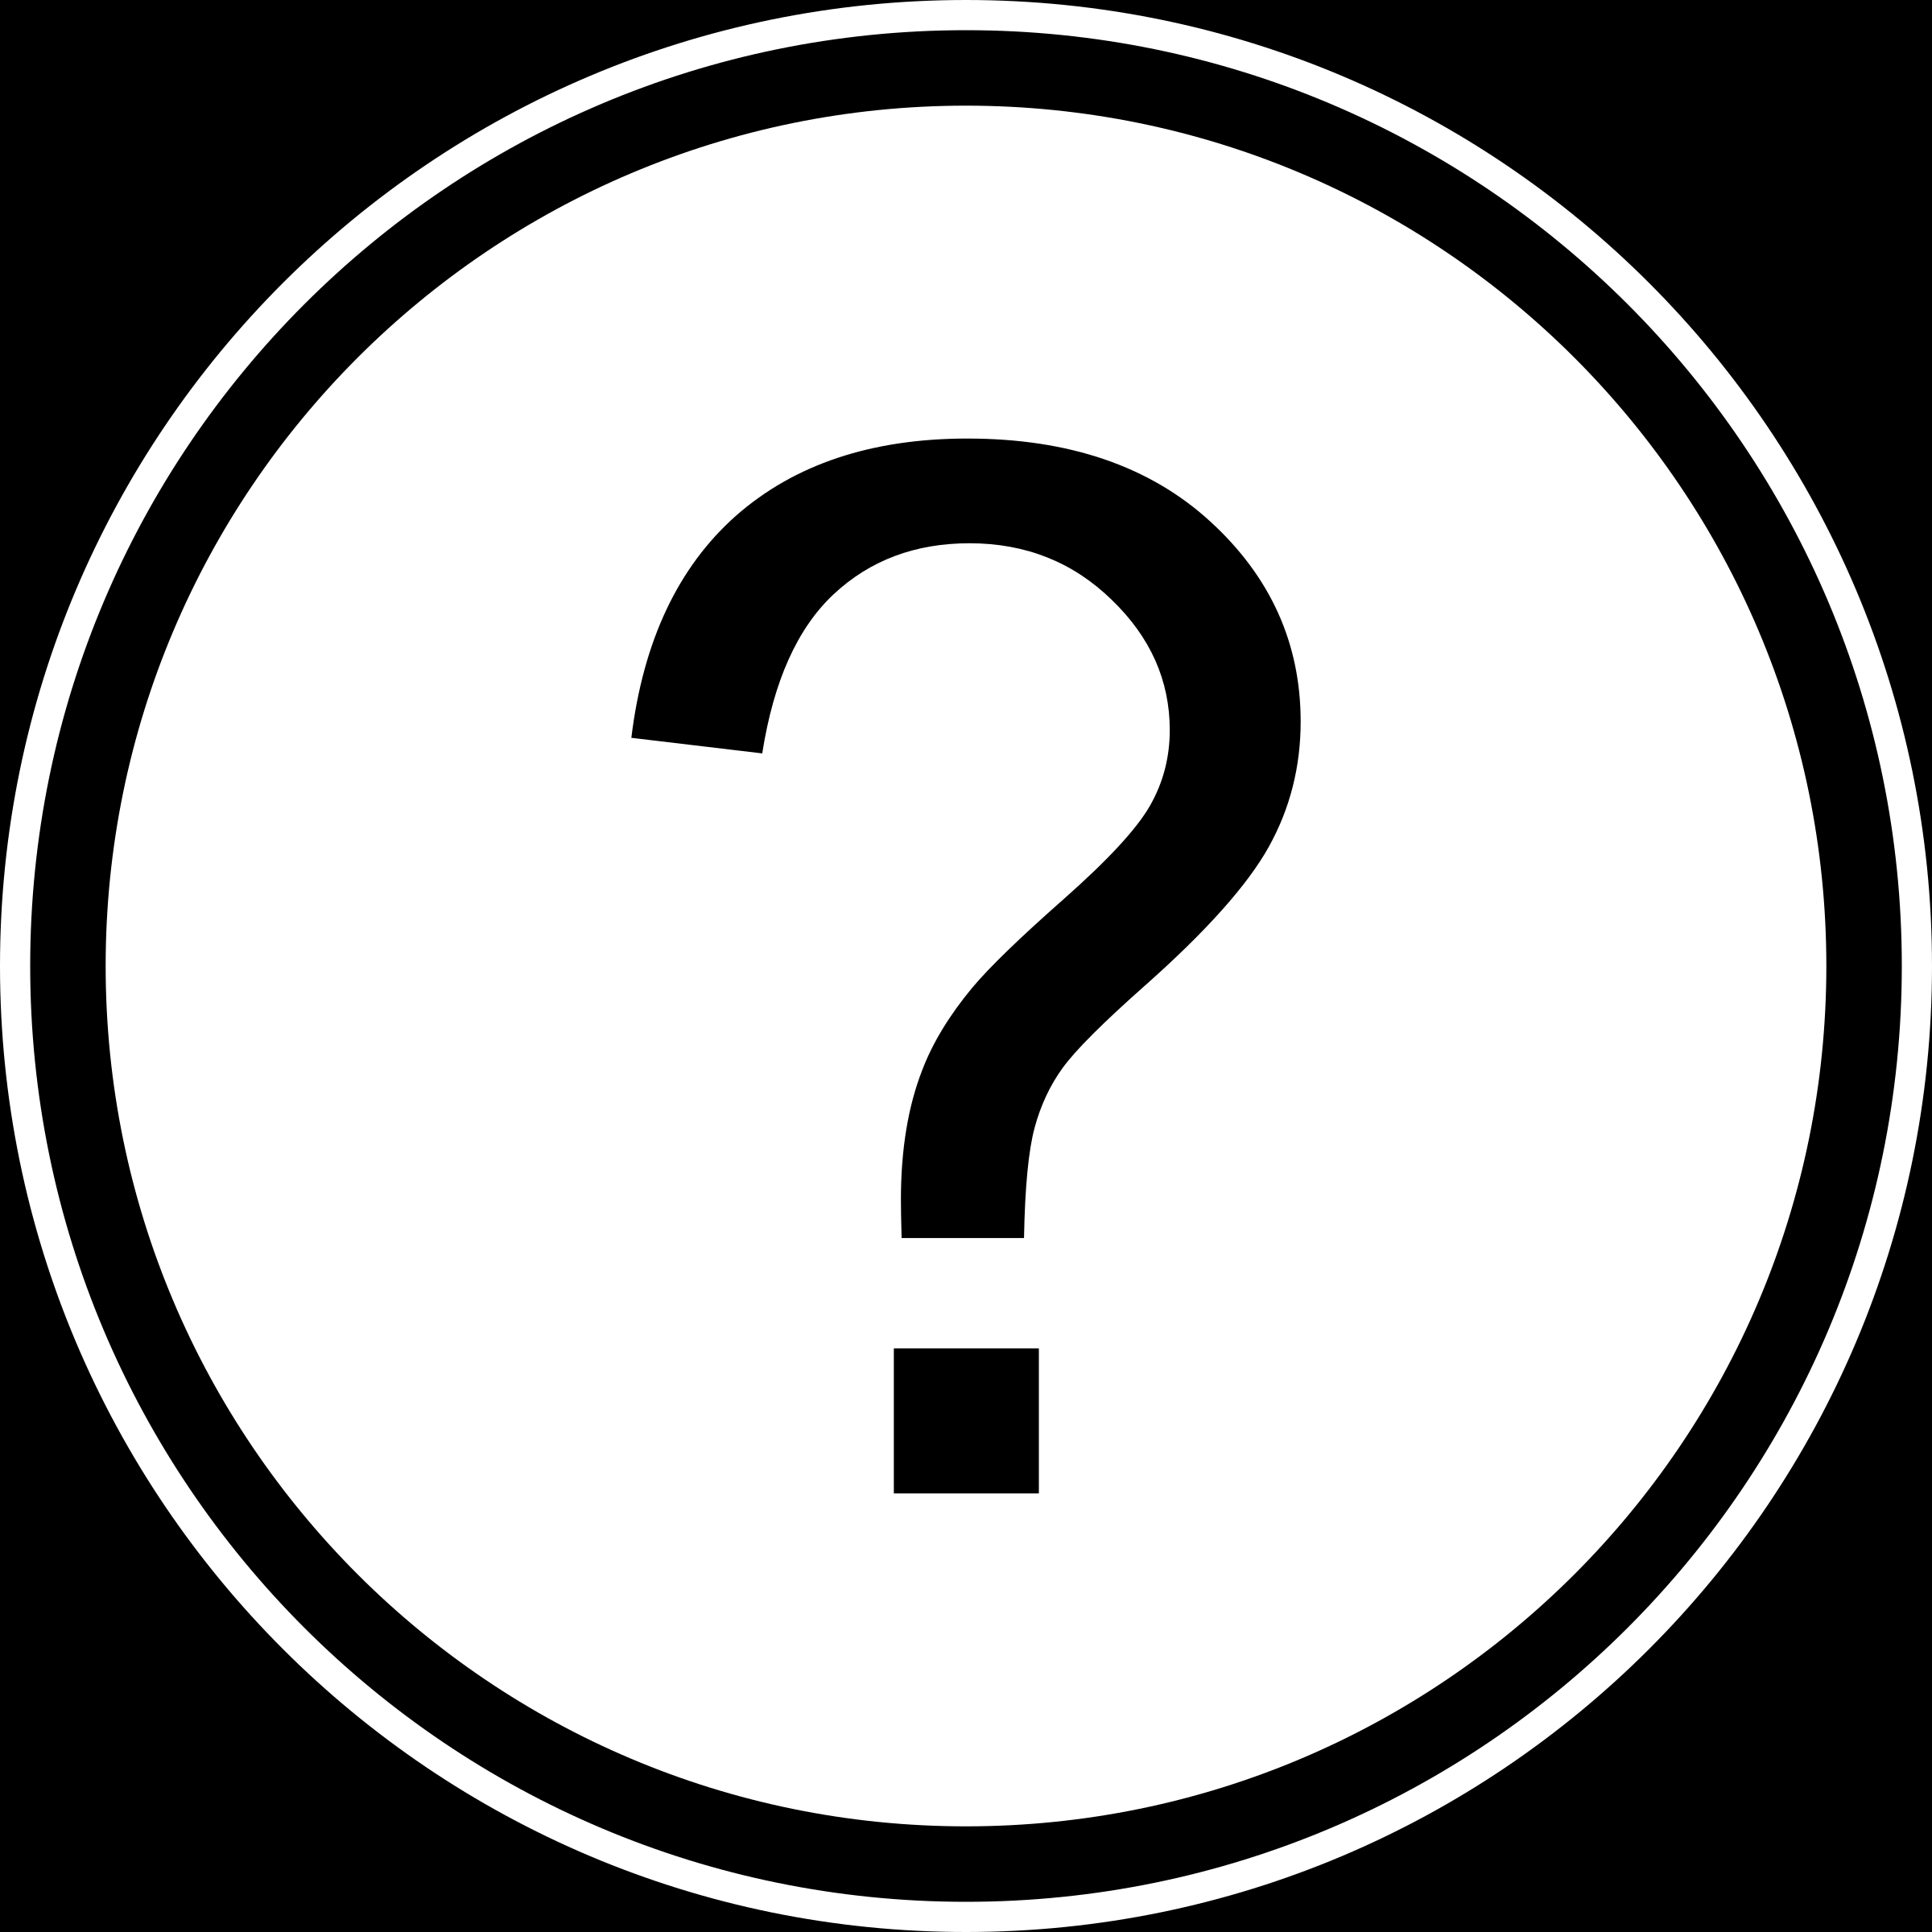 FAQ icon by ciubotaru